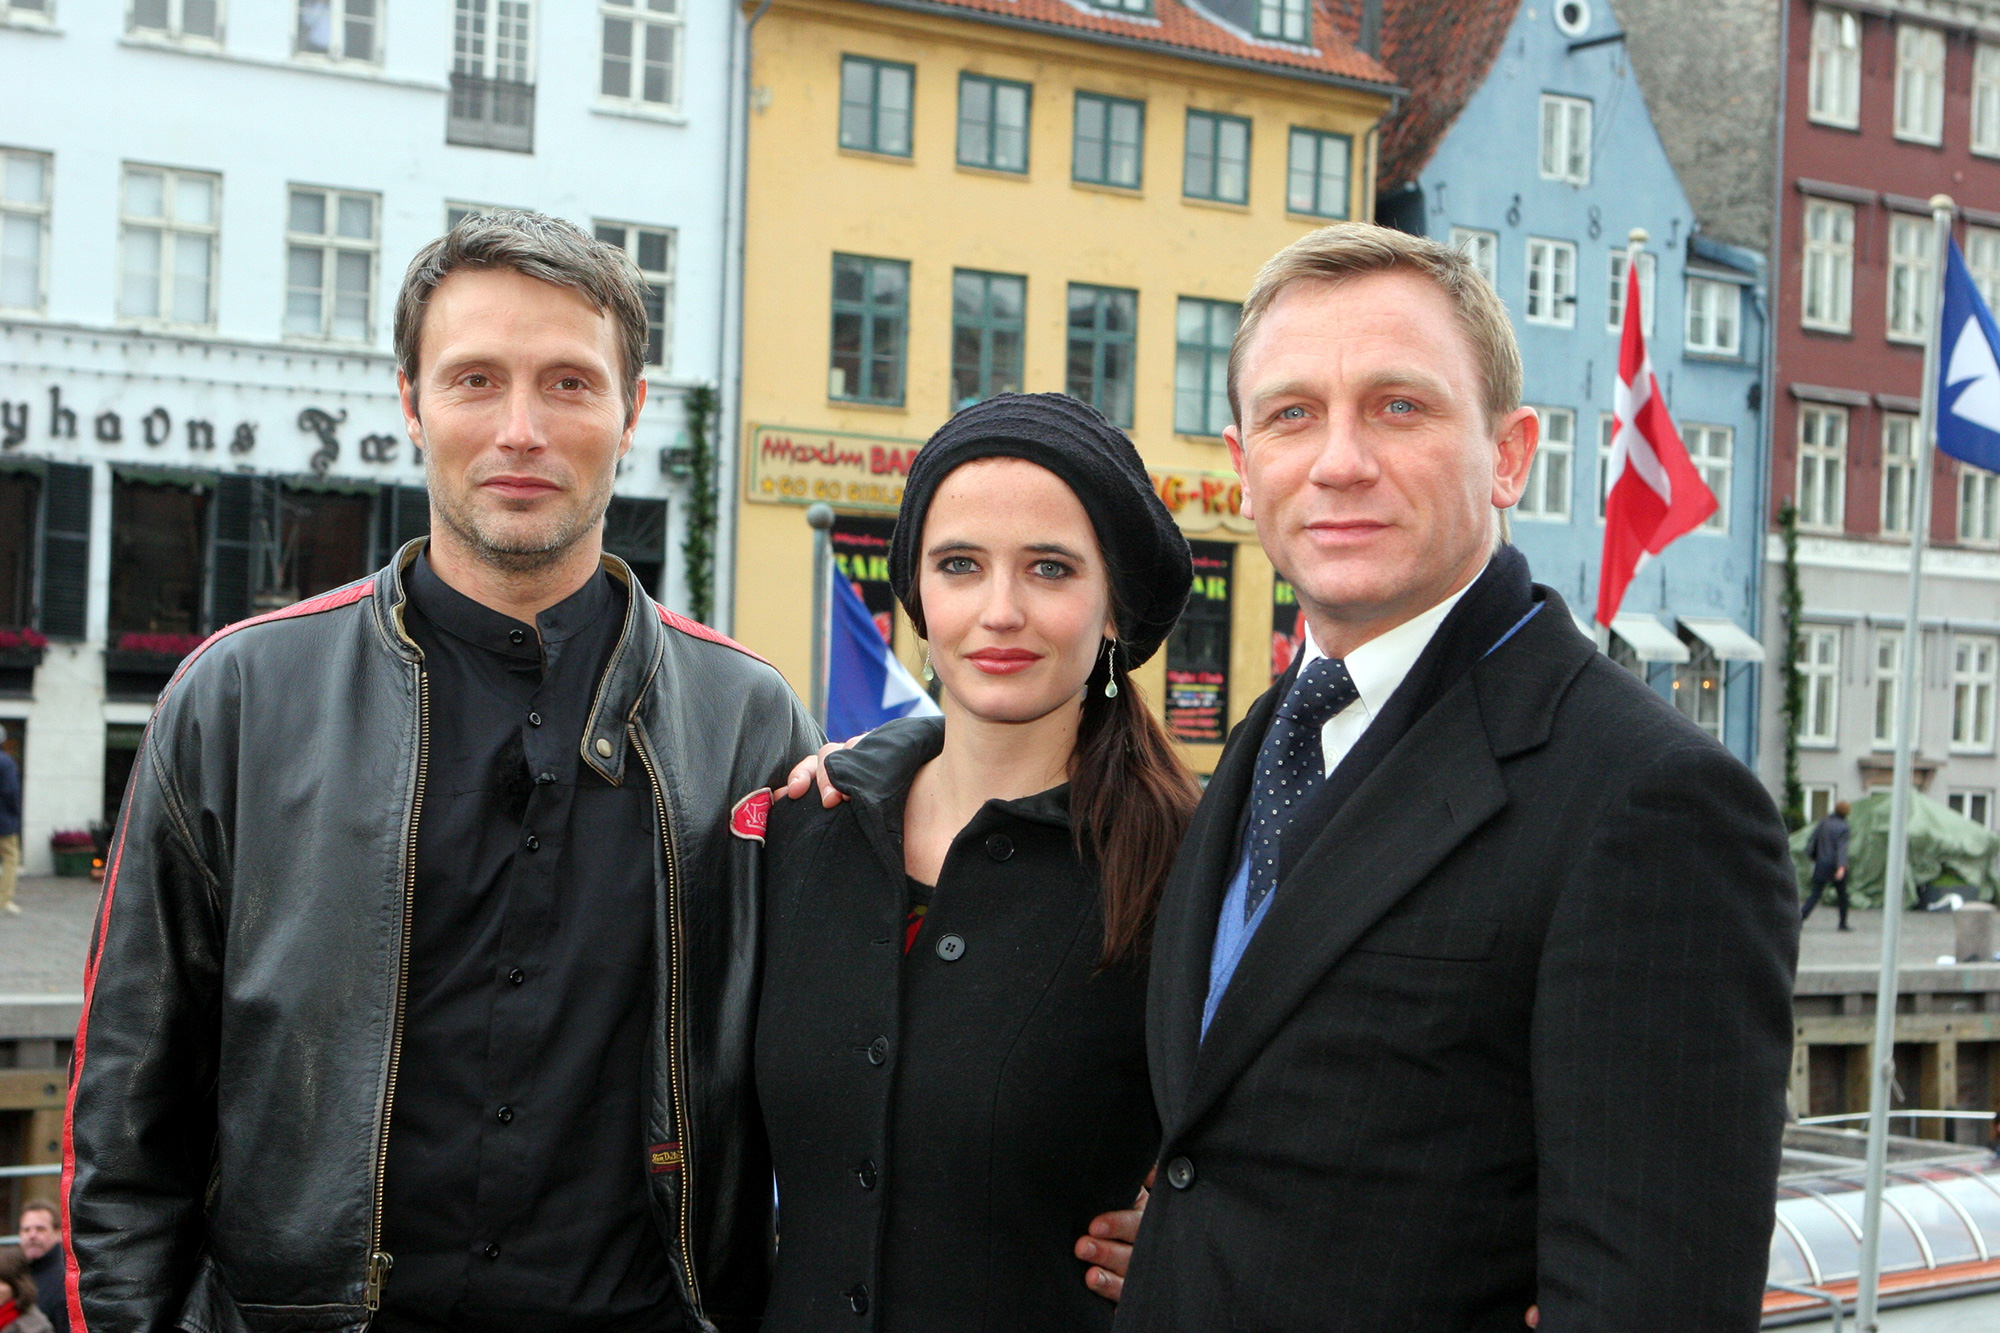 James-Bond-i-Nyhavn